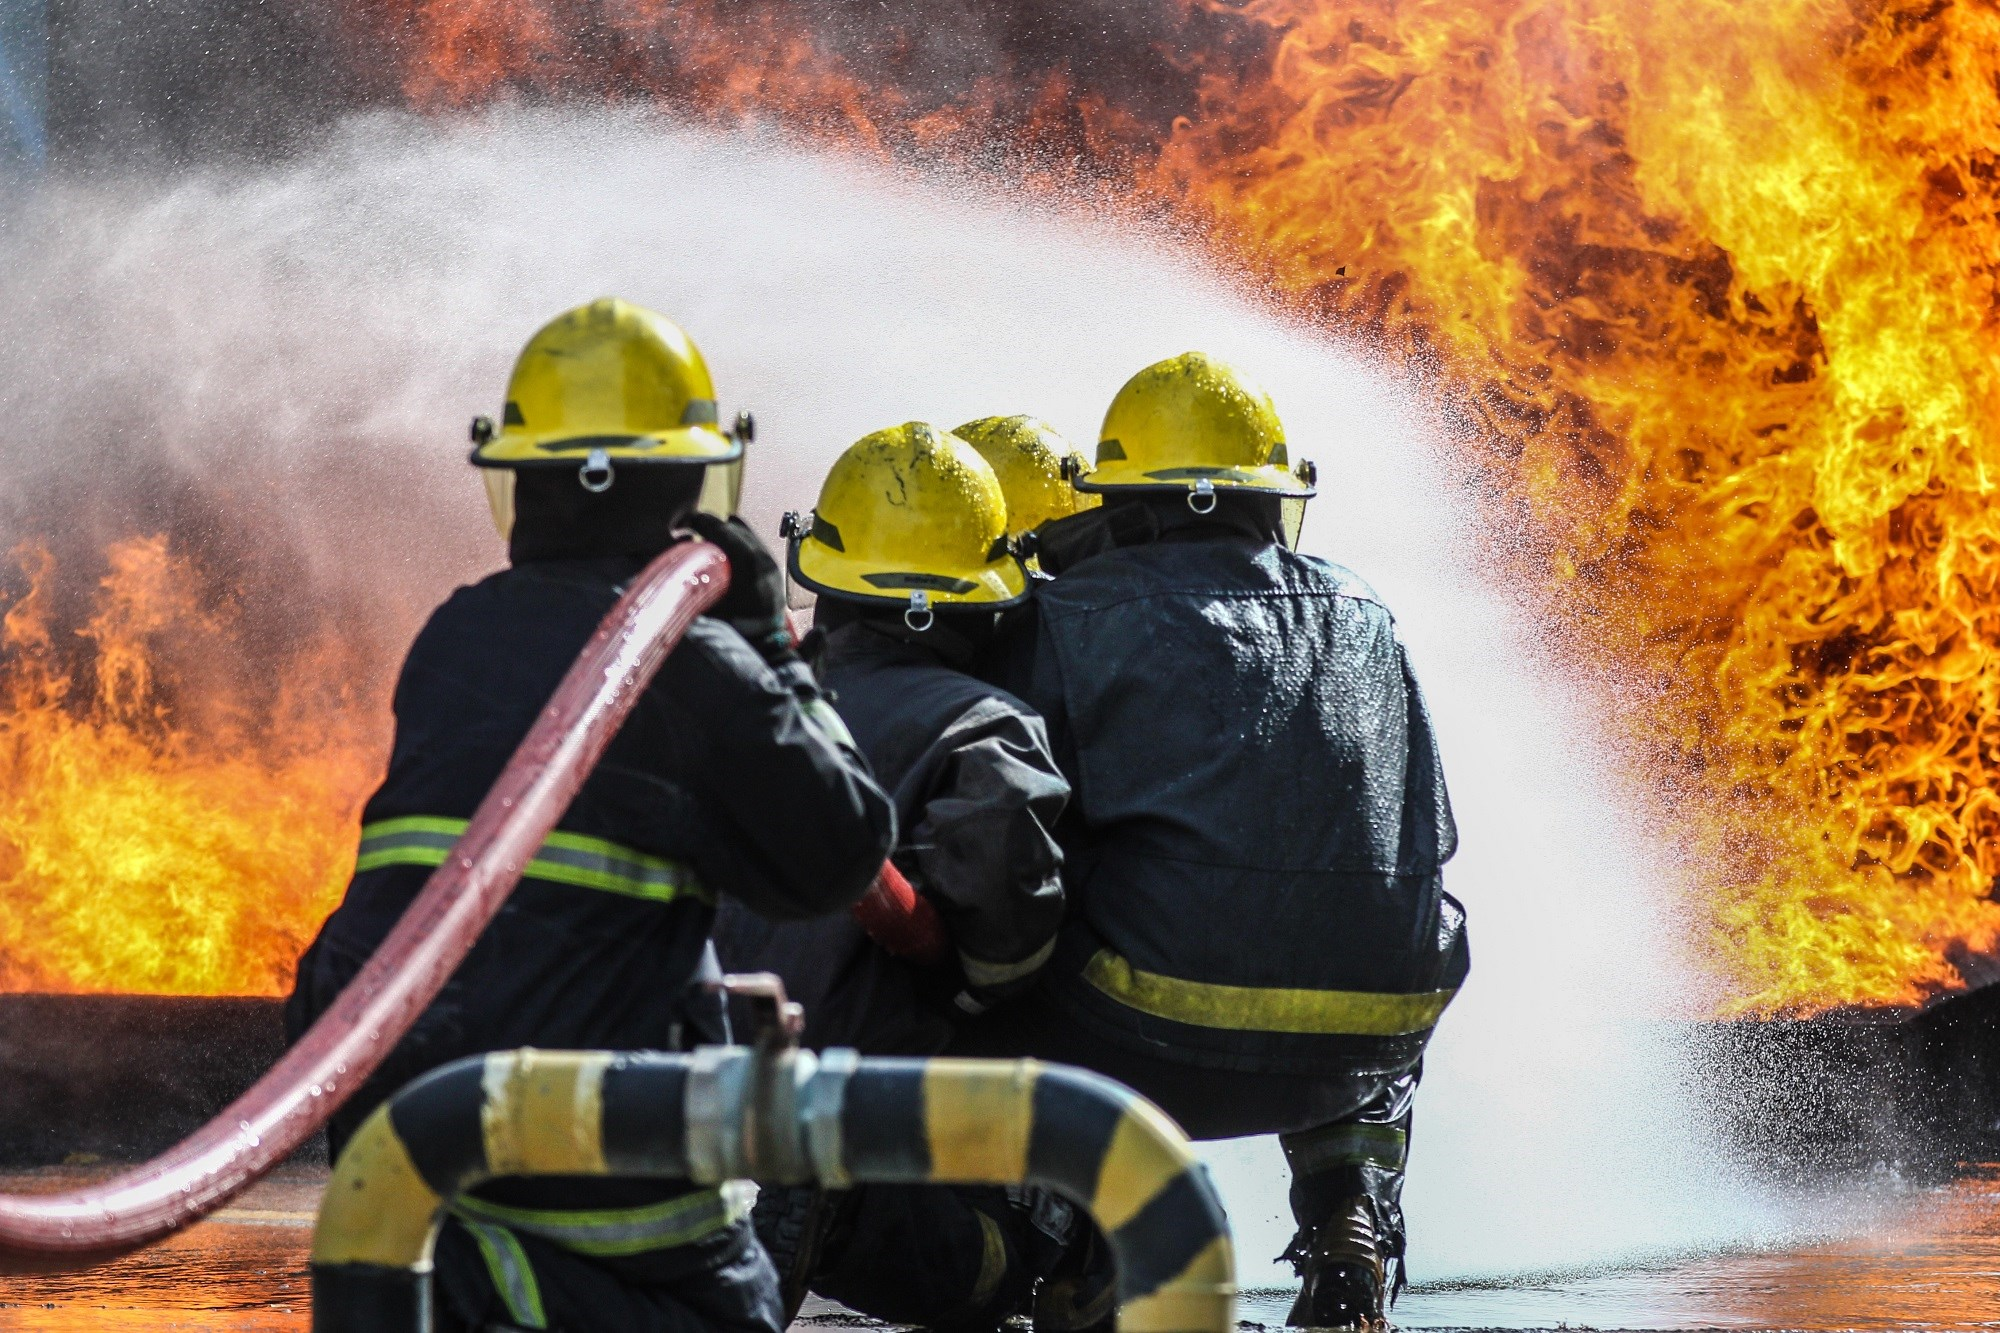 Researchers suggested targeted screening for coronary artery disease in firefighters to reduce duty-related cardiac arrests.